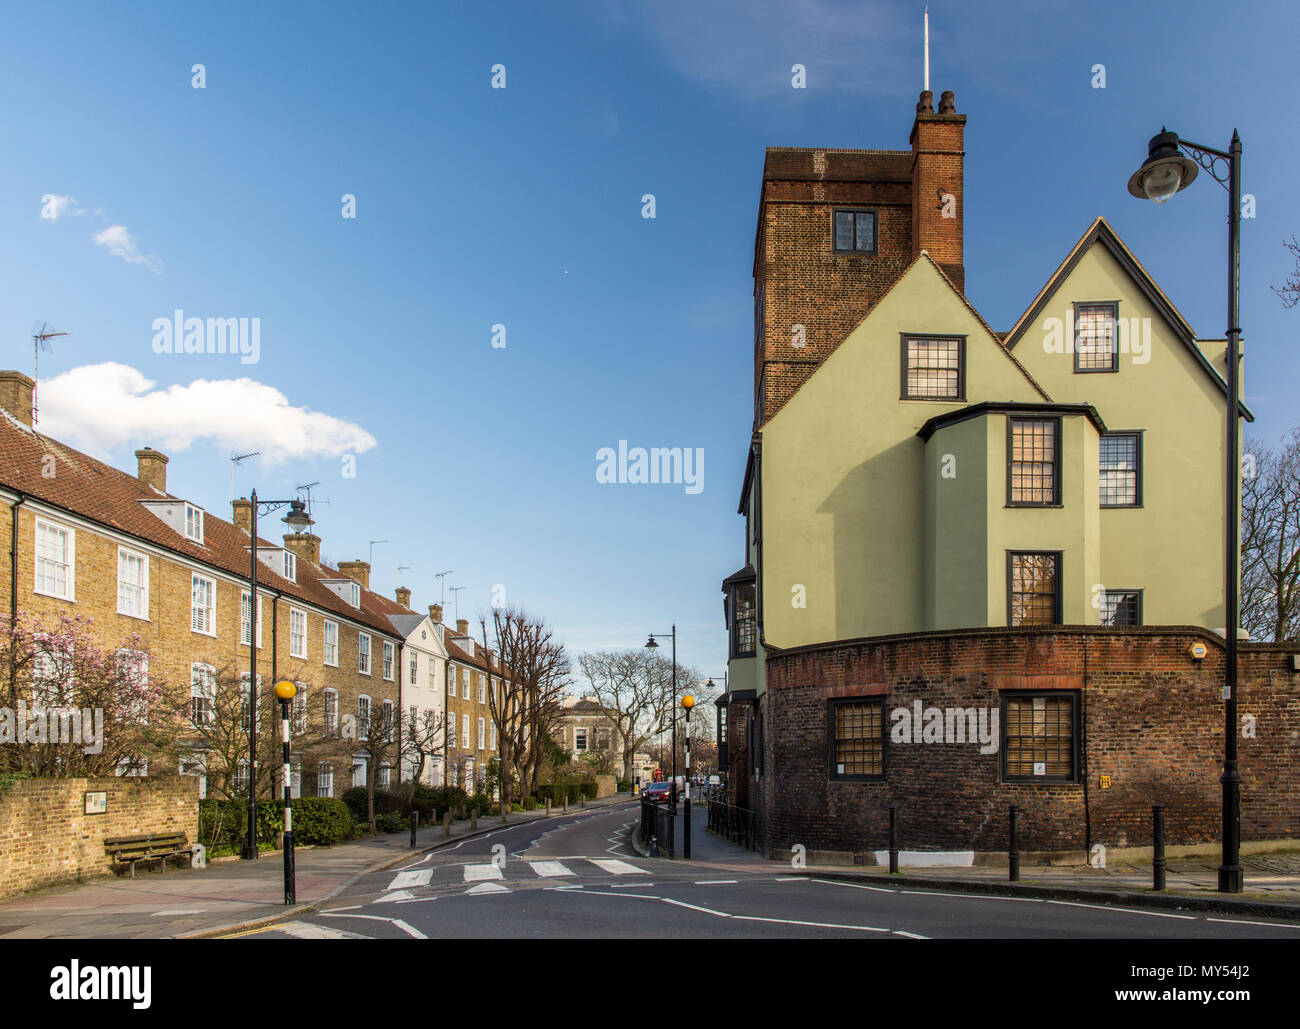 London, England, UK - February 12, 2018: The historic Canonbury Tower stands amongst houses in the residential neighbourhood of Islington in North Lon - Stock Image